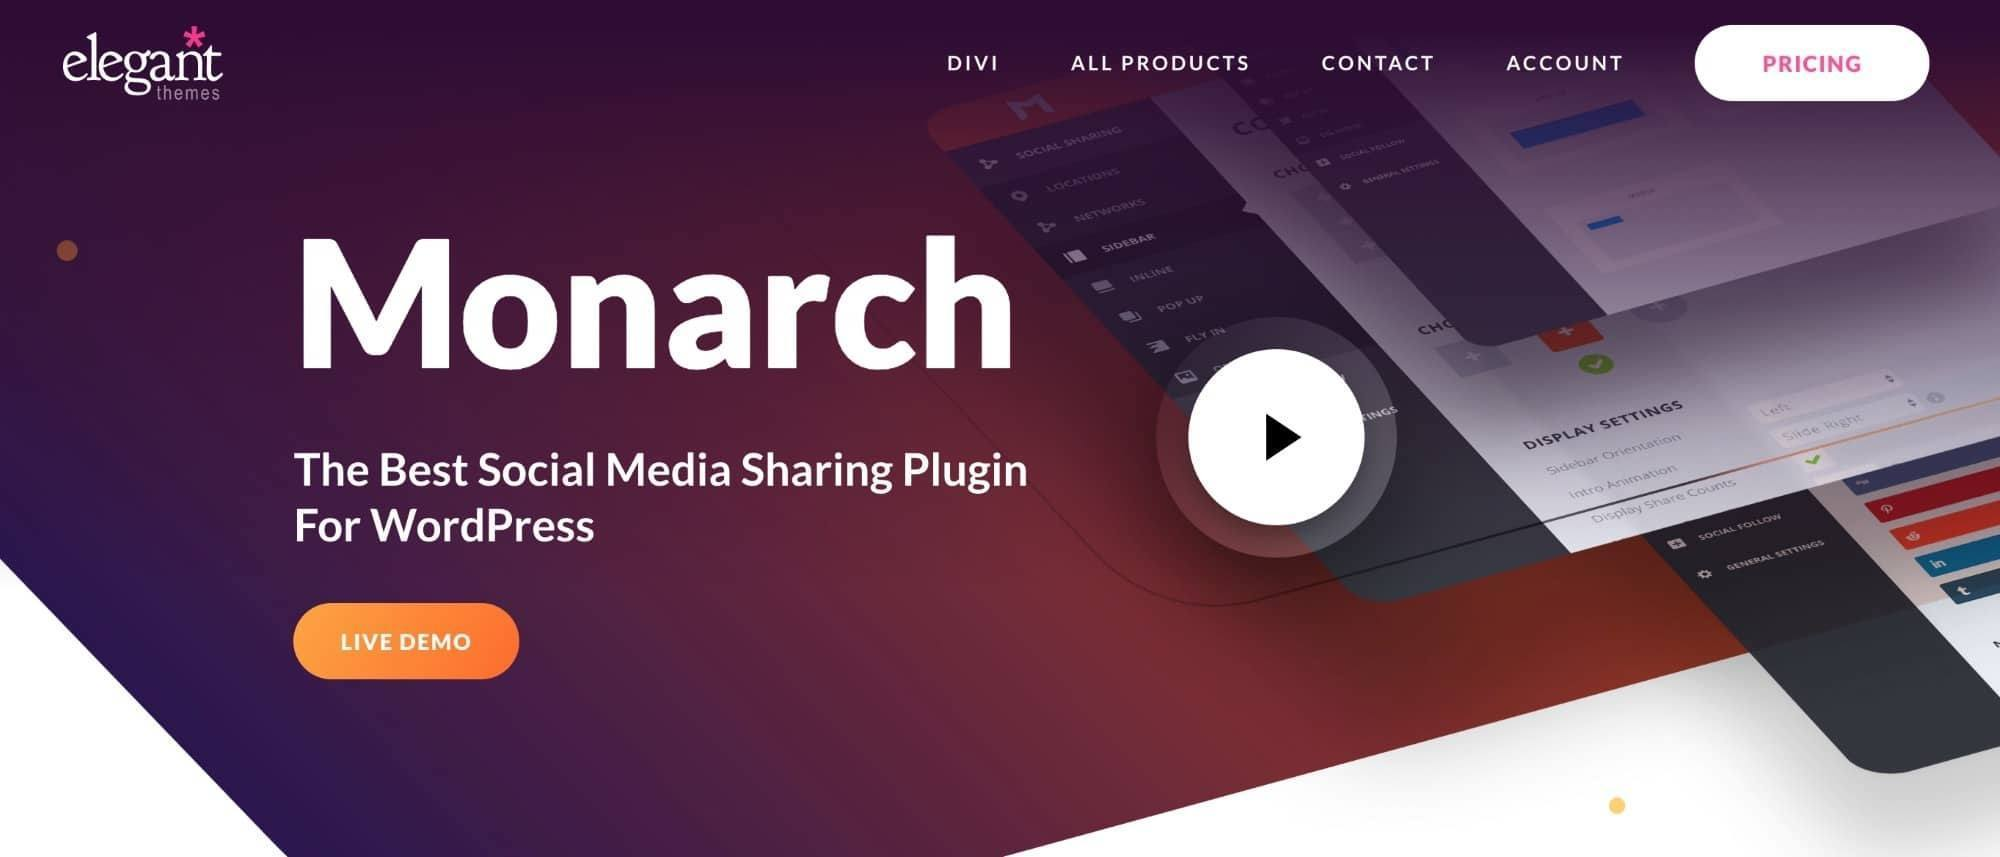 Best-Website-Plugins-Selling-Music-Monarch-Social-Sharing-Plgin